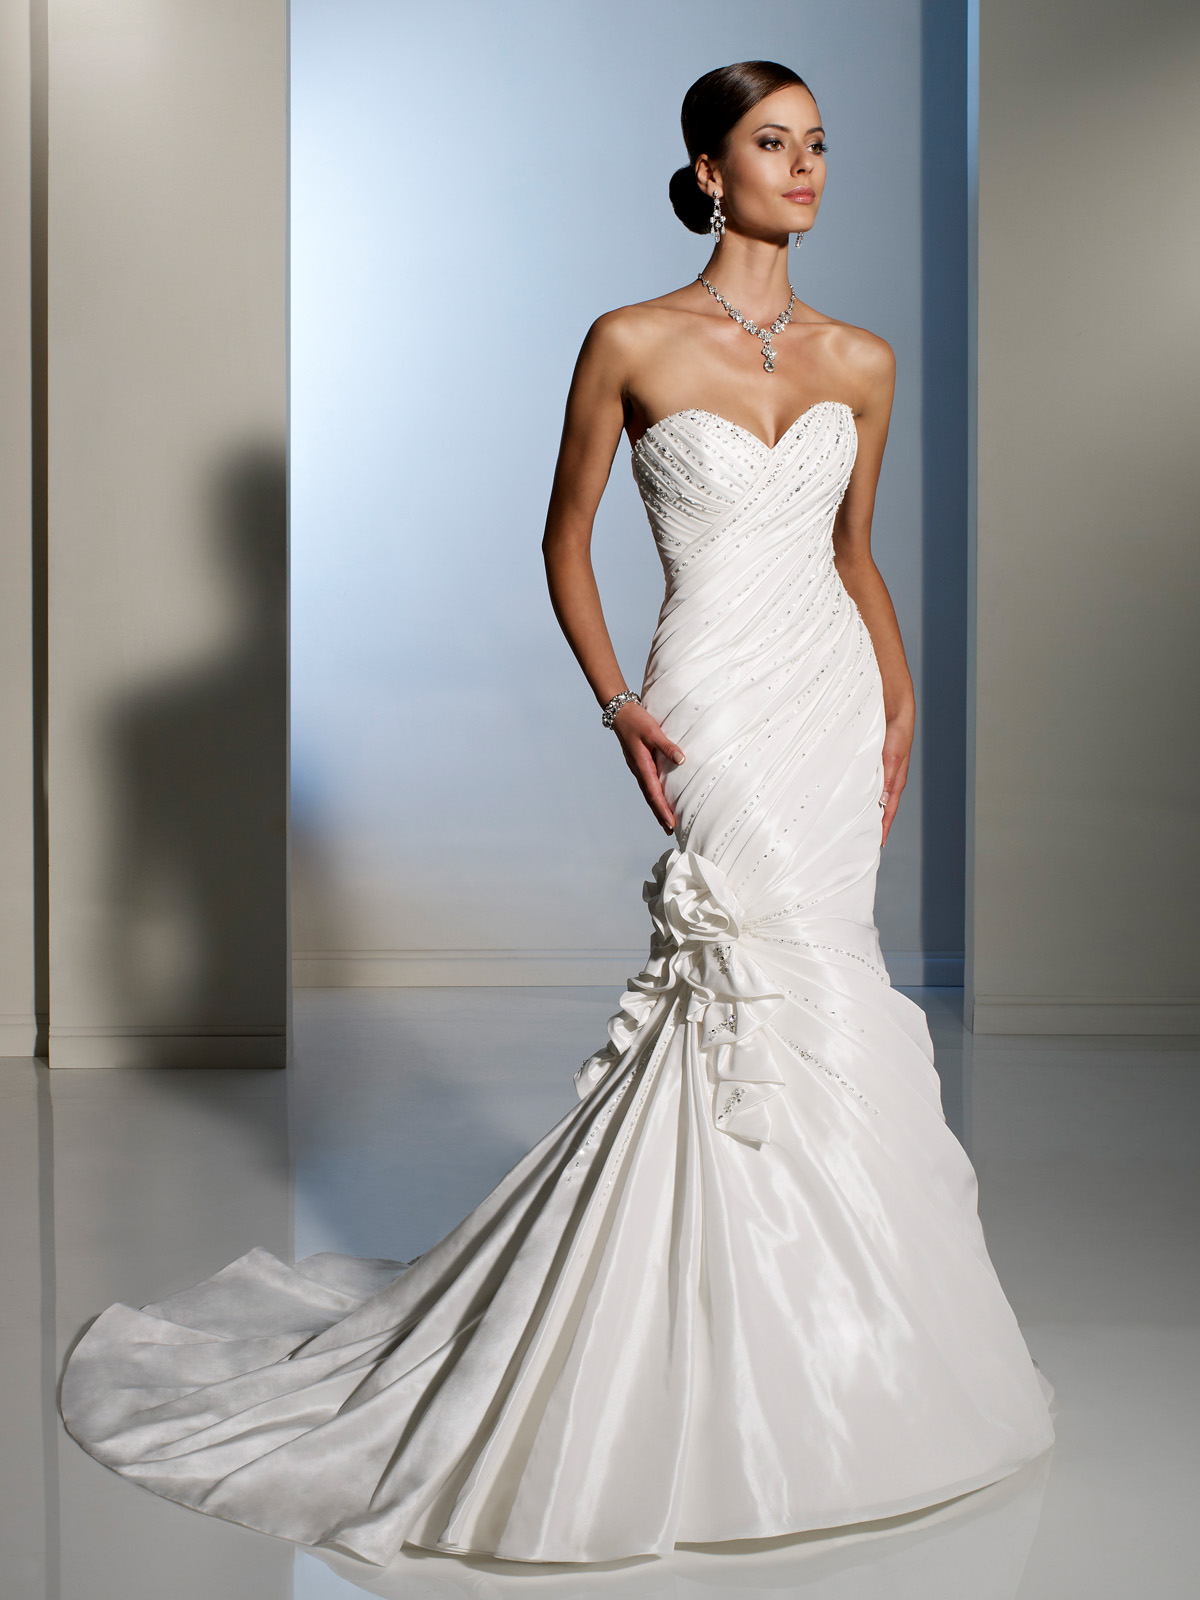 West weddings splendid sophia a designer wedding gown event for Designer wedding dresses uk